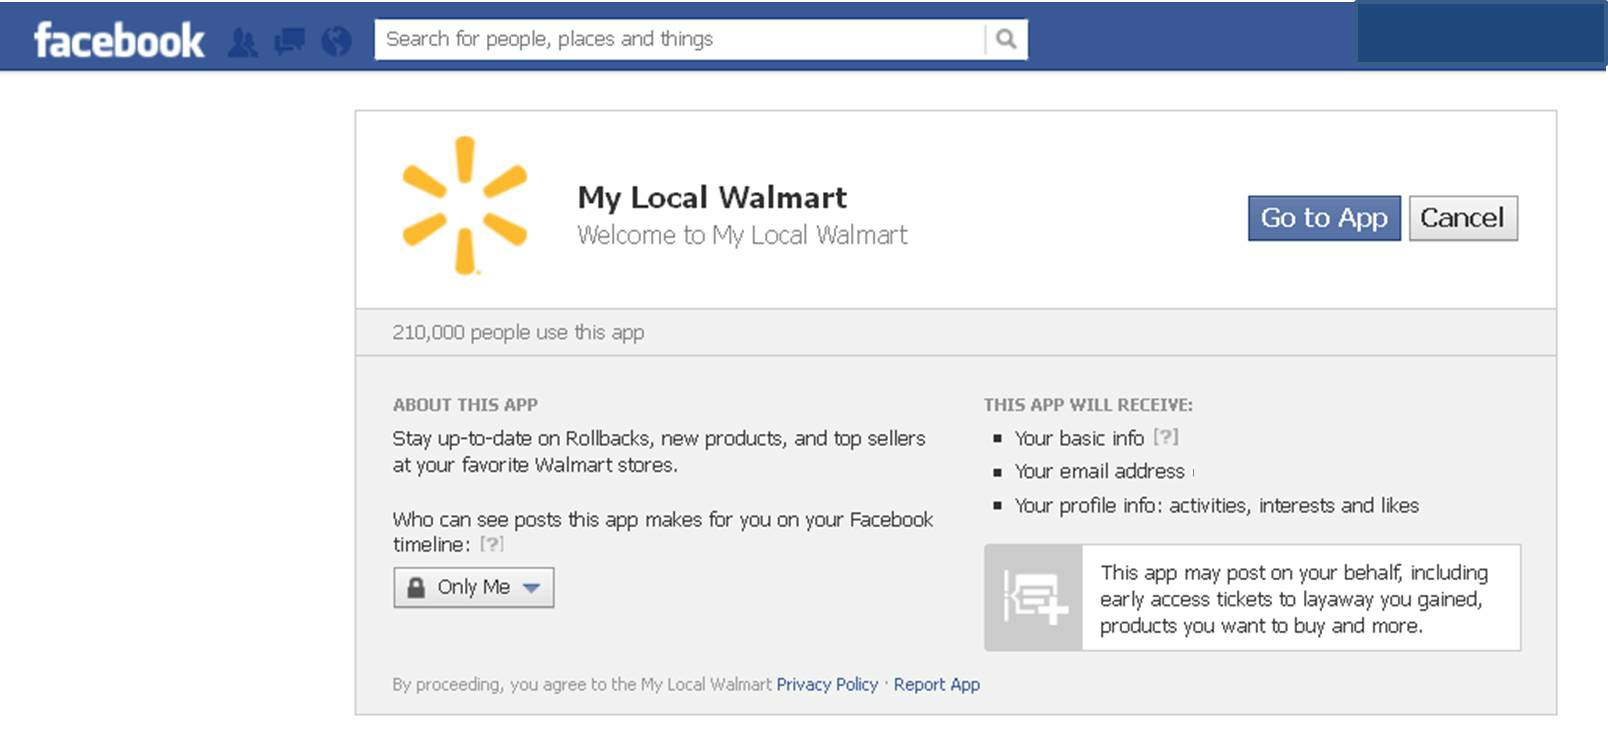 Leadership Character and Communication - Walmart's Local Facebook